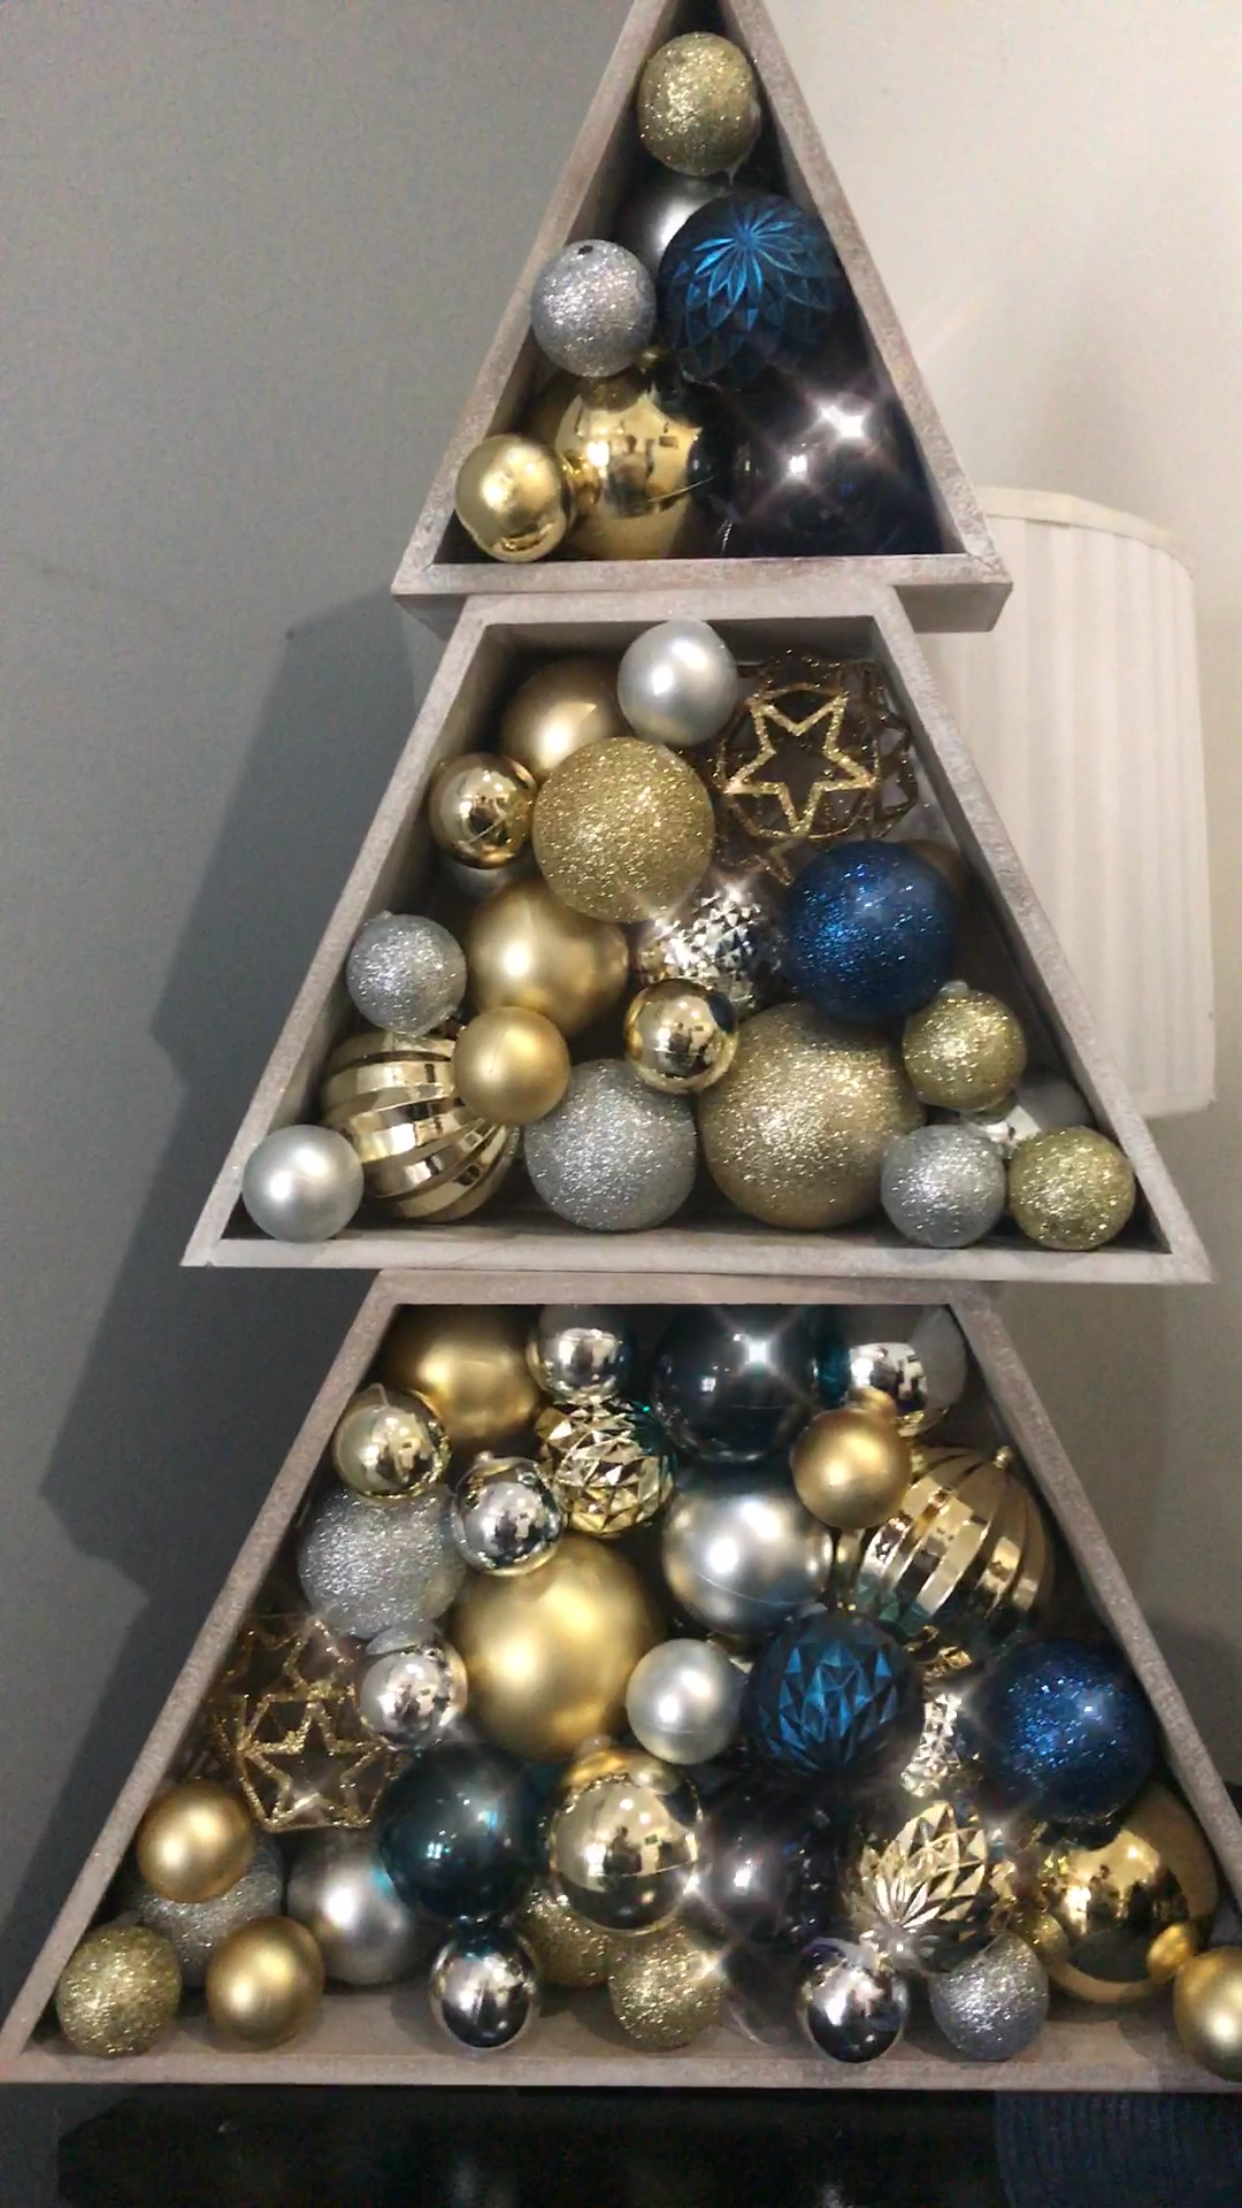 Kmart Tree Hack Hot Glued Balls And Stacked Blue Gold Silver White Wine Glass Candle Christmas Decorations Xmas